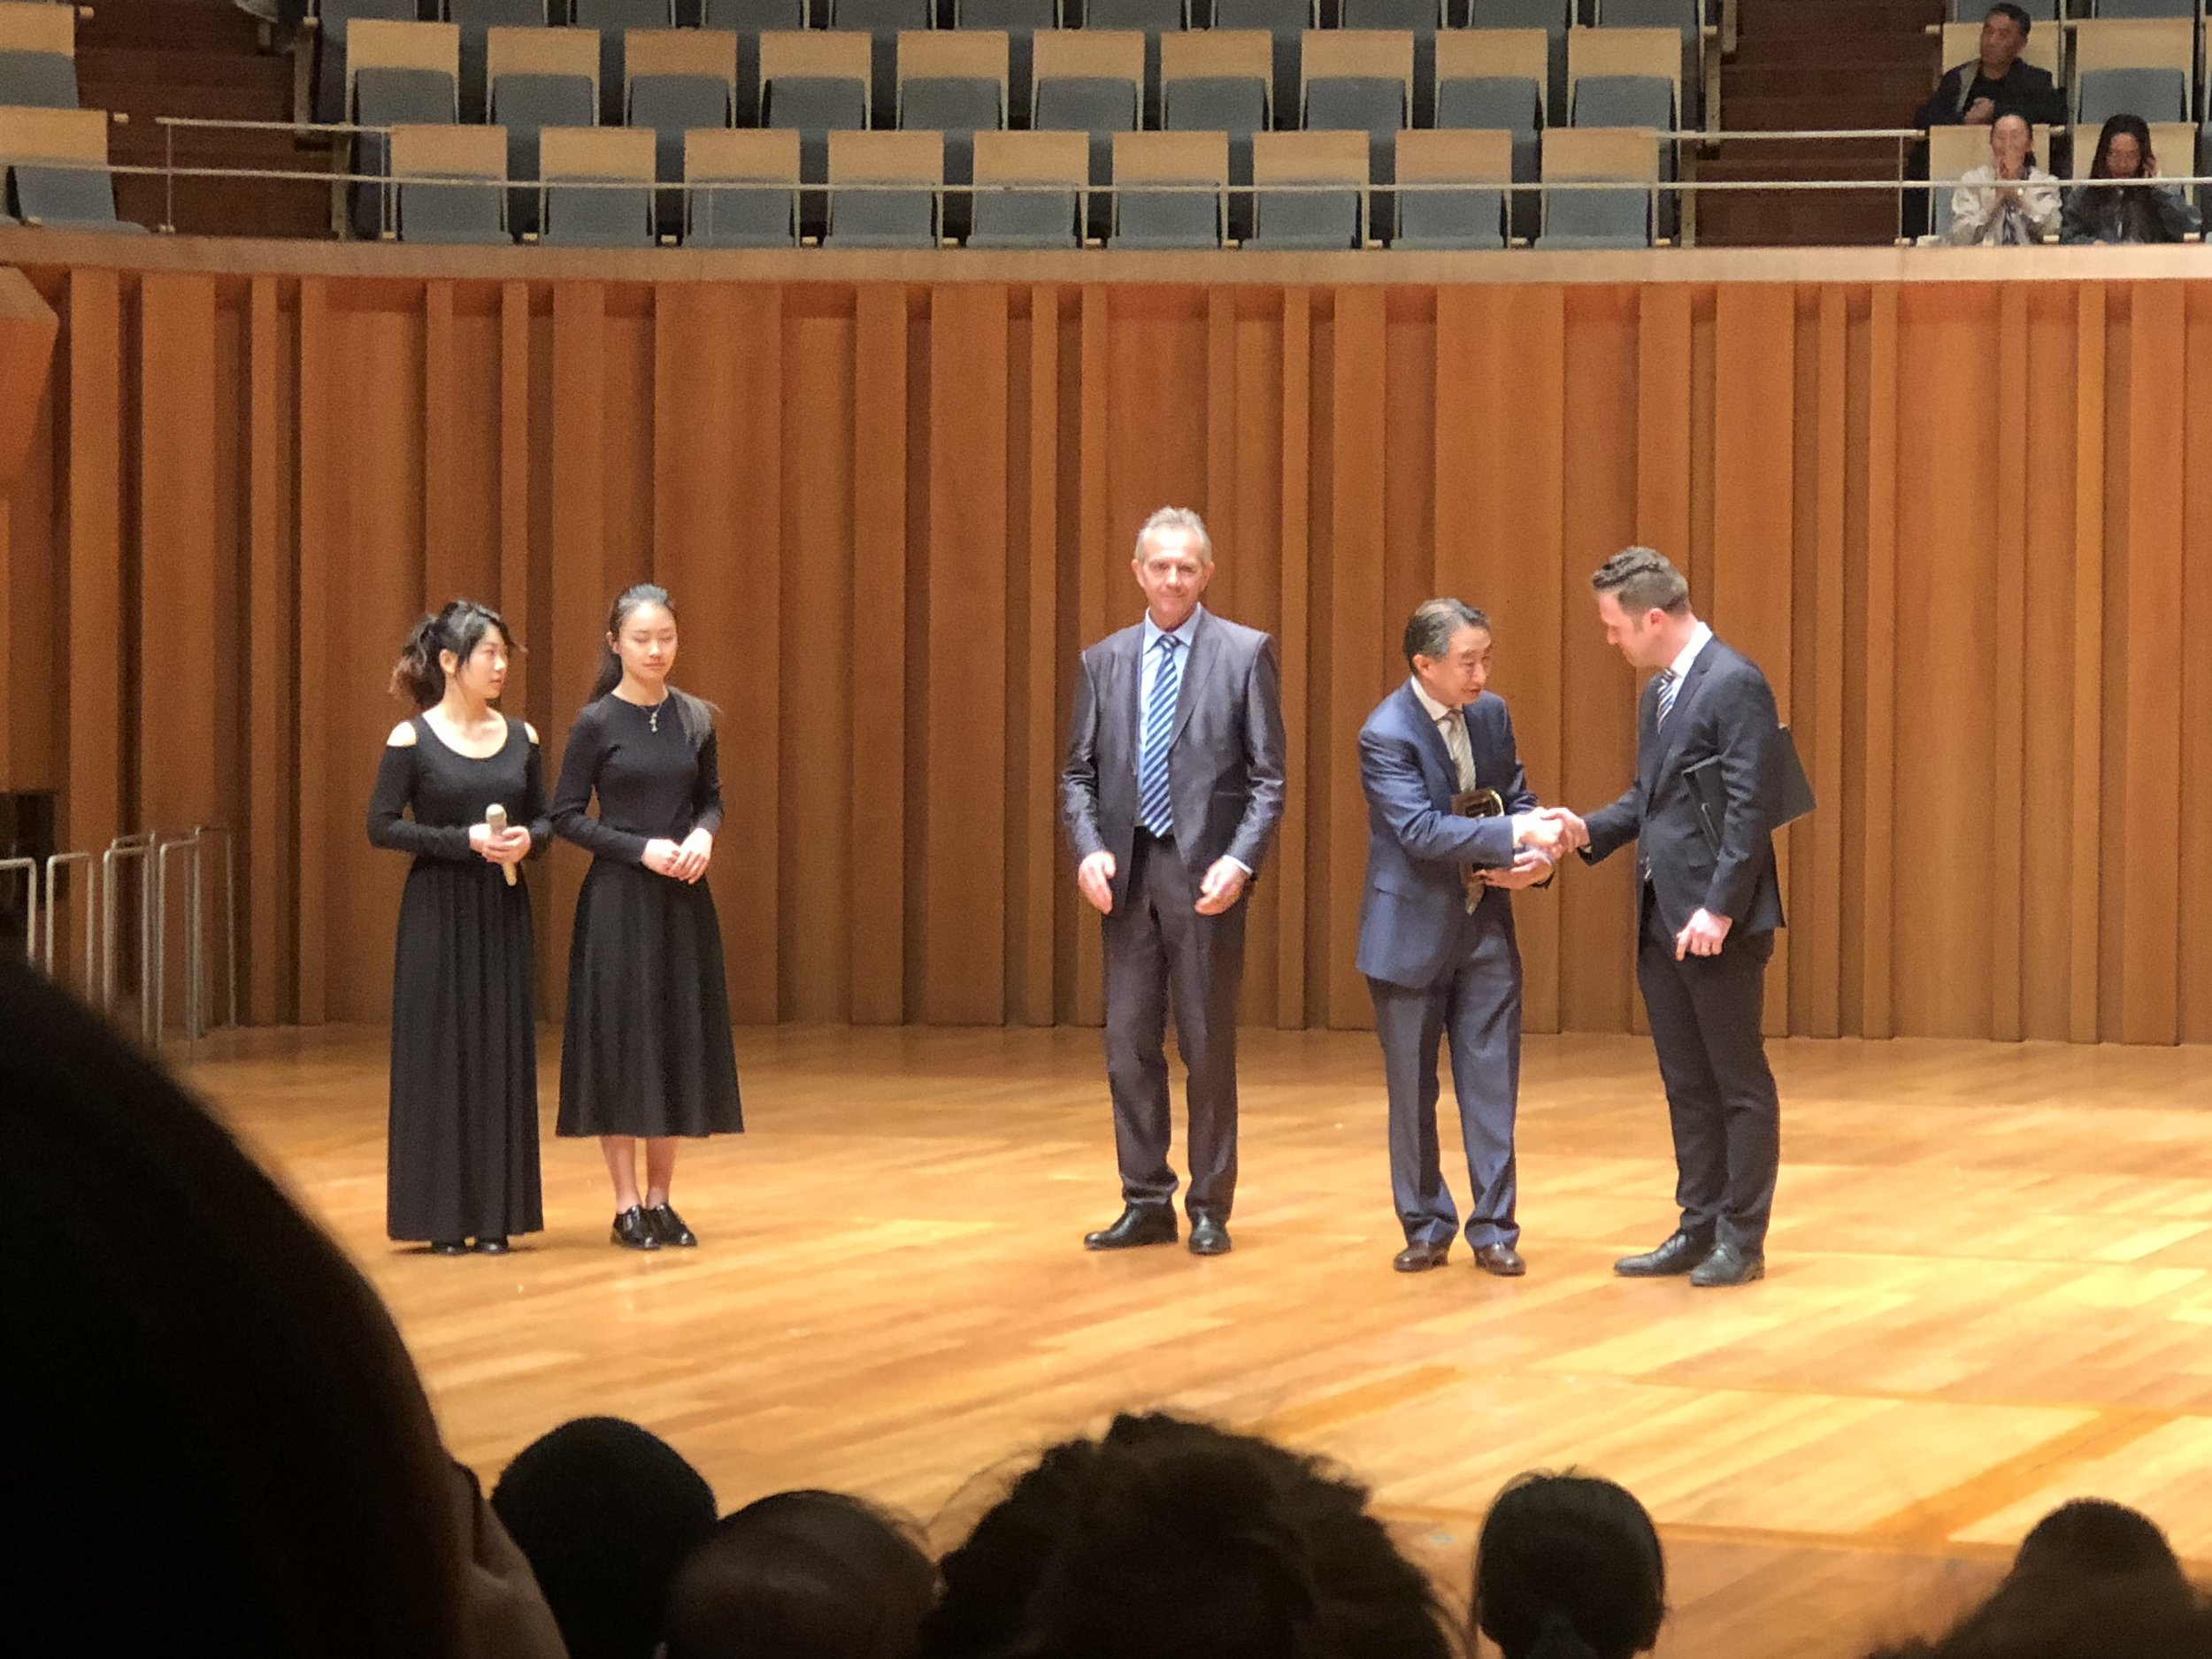 Zheng Quan receives a plaque from VSA President-Elect Zachary Moen honoring his commitment to excellence at the 4th China International Violin and Bow Making Competition.